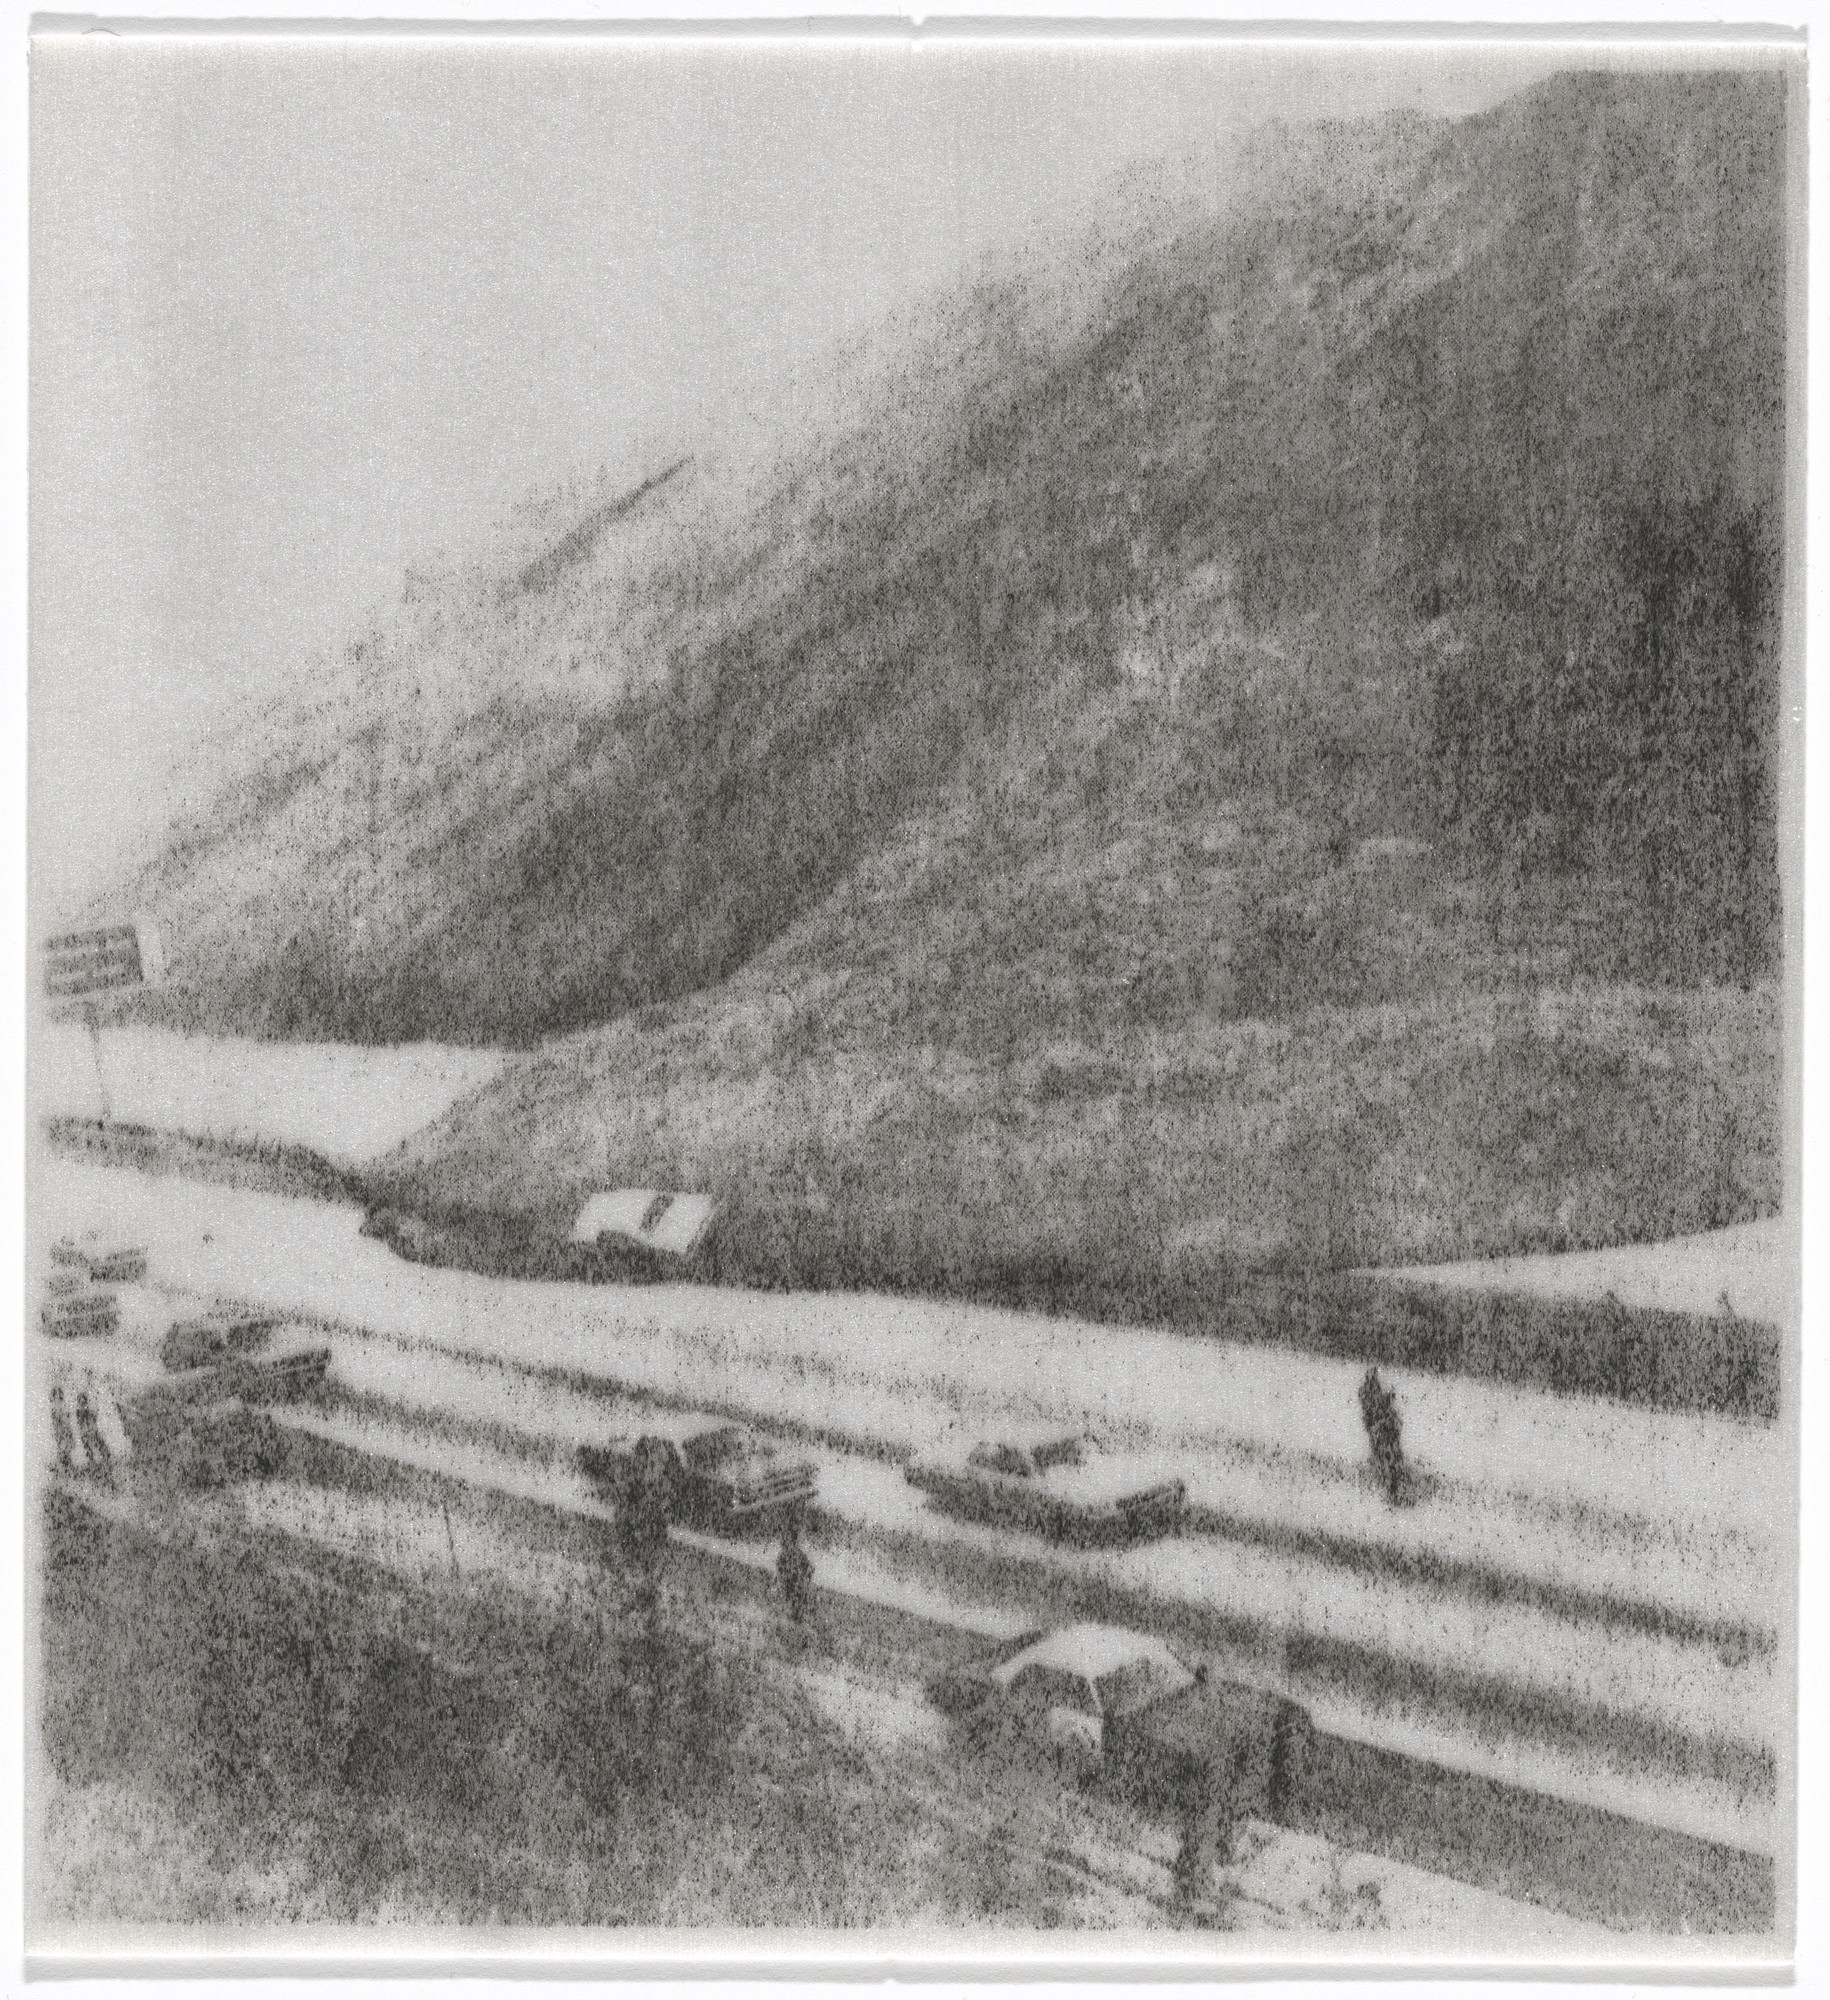 William Leavitt, Bas Jan Ader. Landslide, bonus issue. 1969